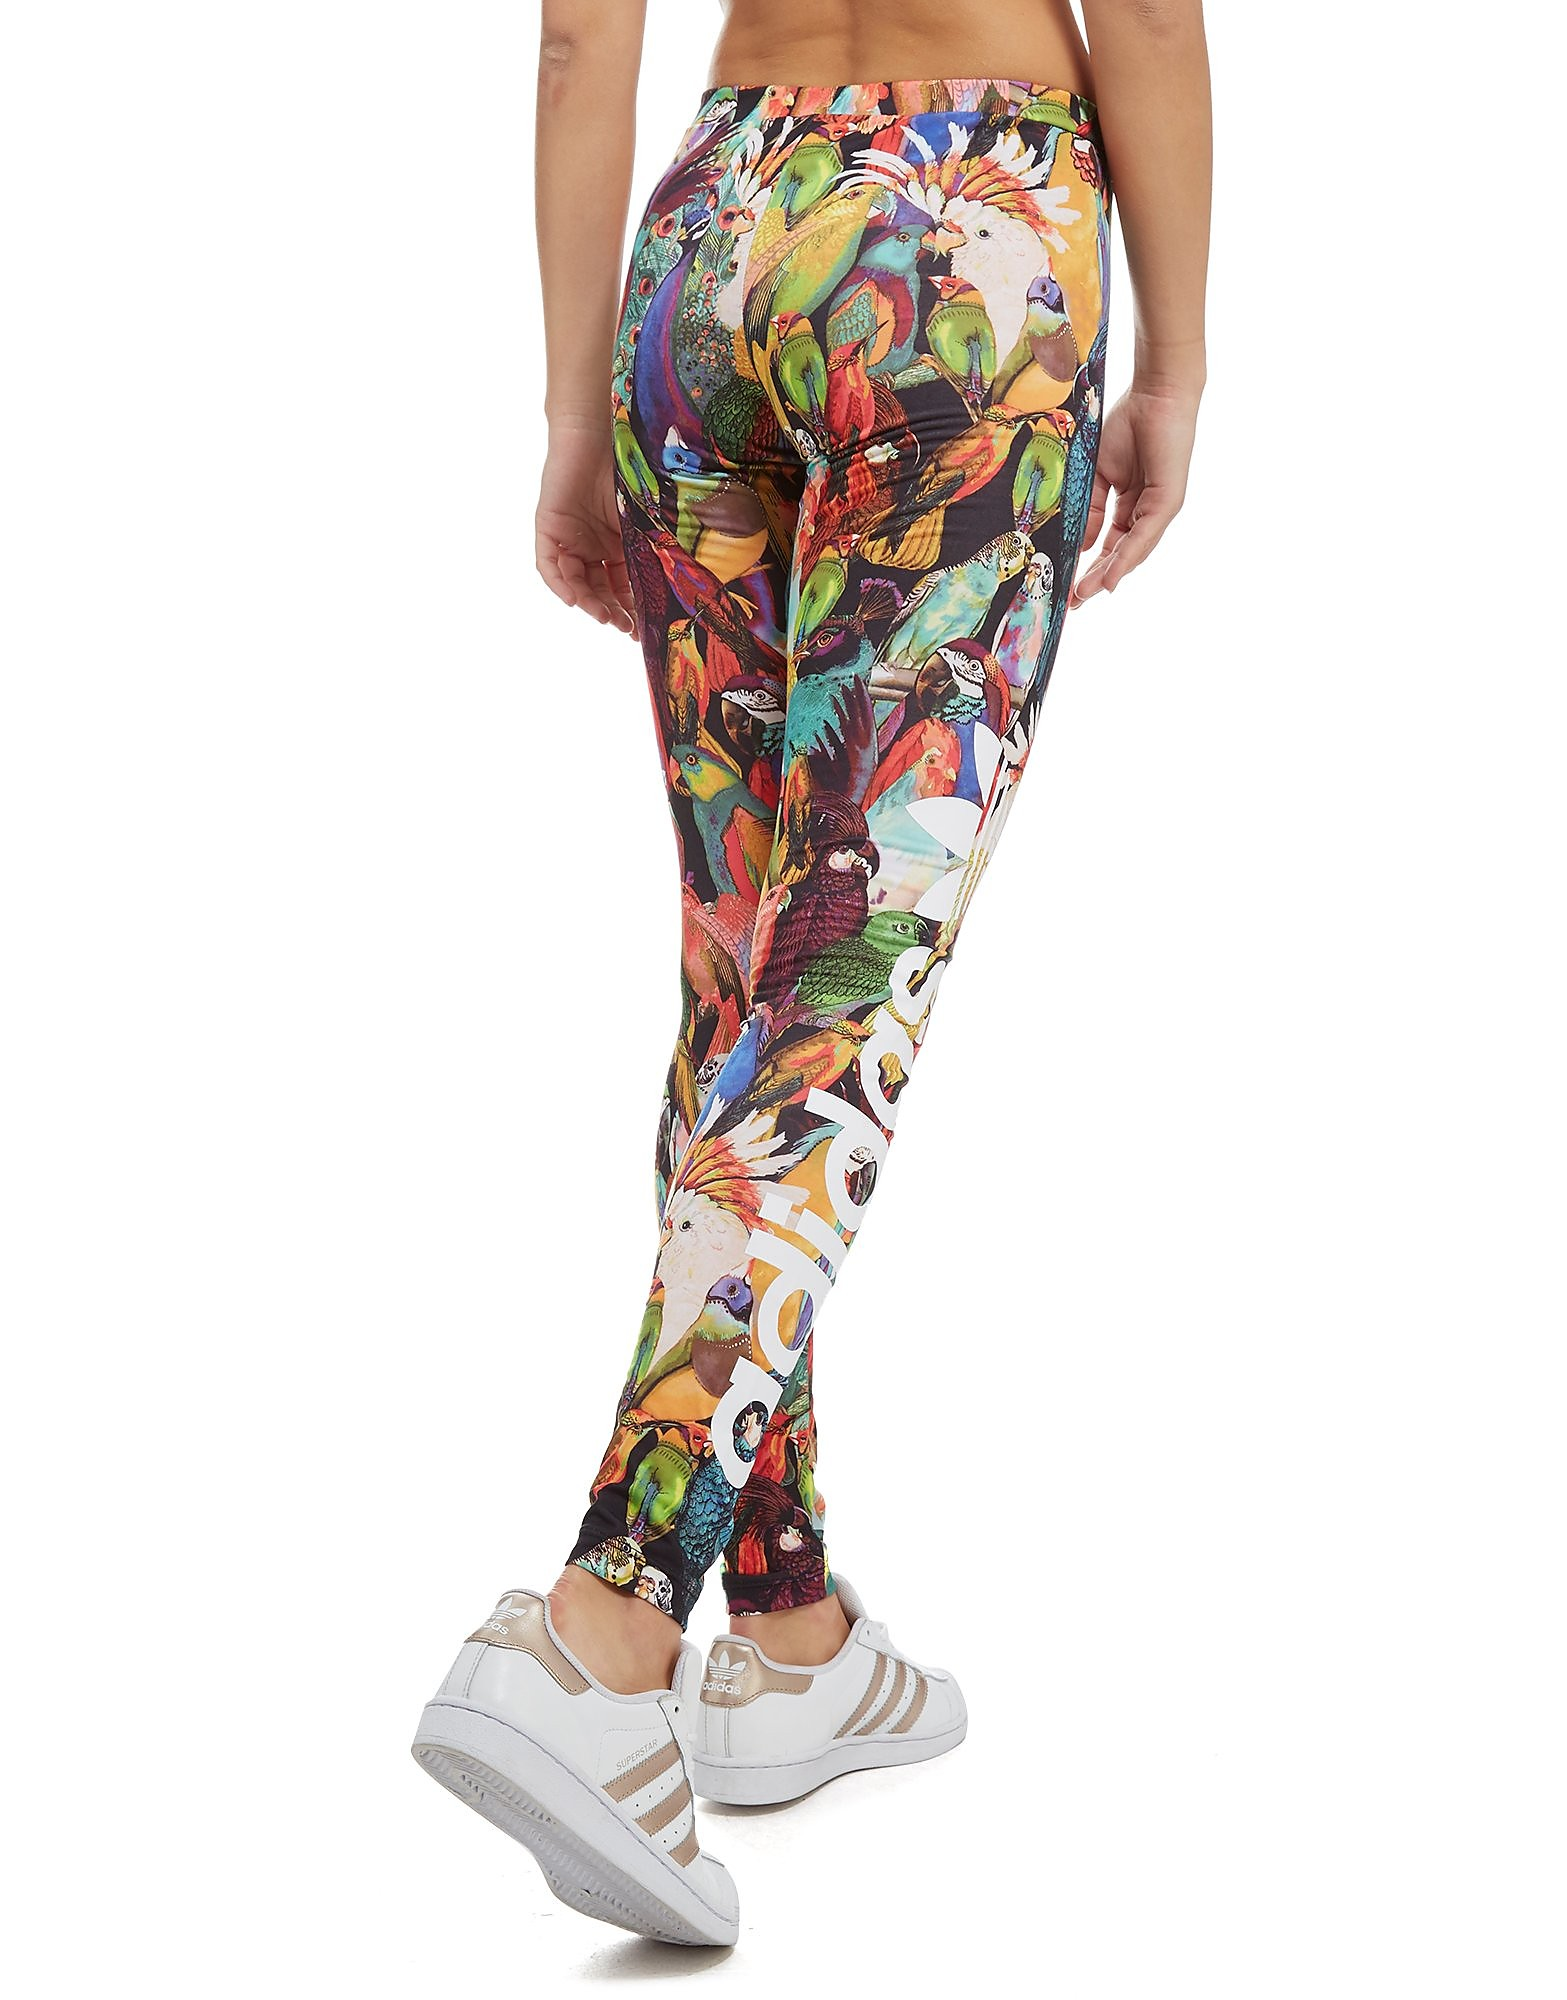 adidas Originals Passaredo Leggings